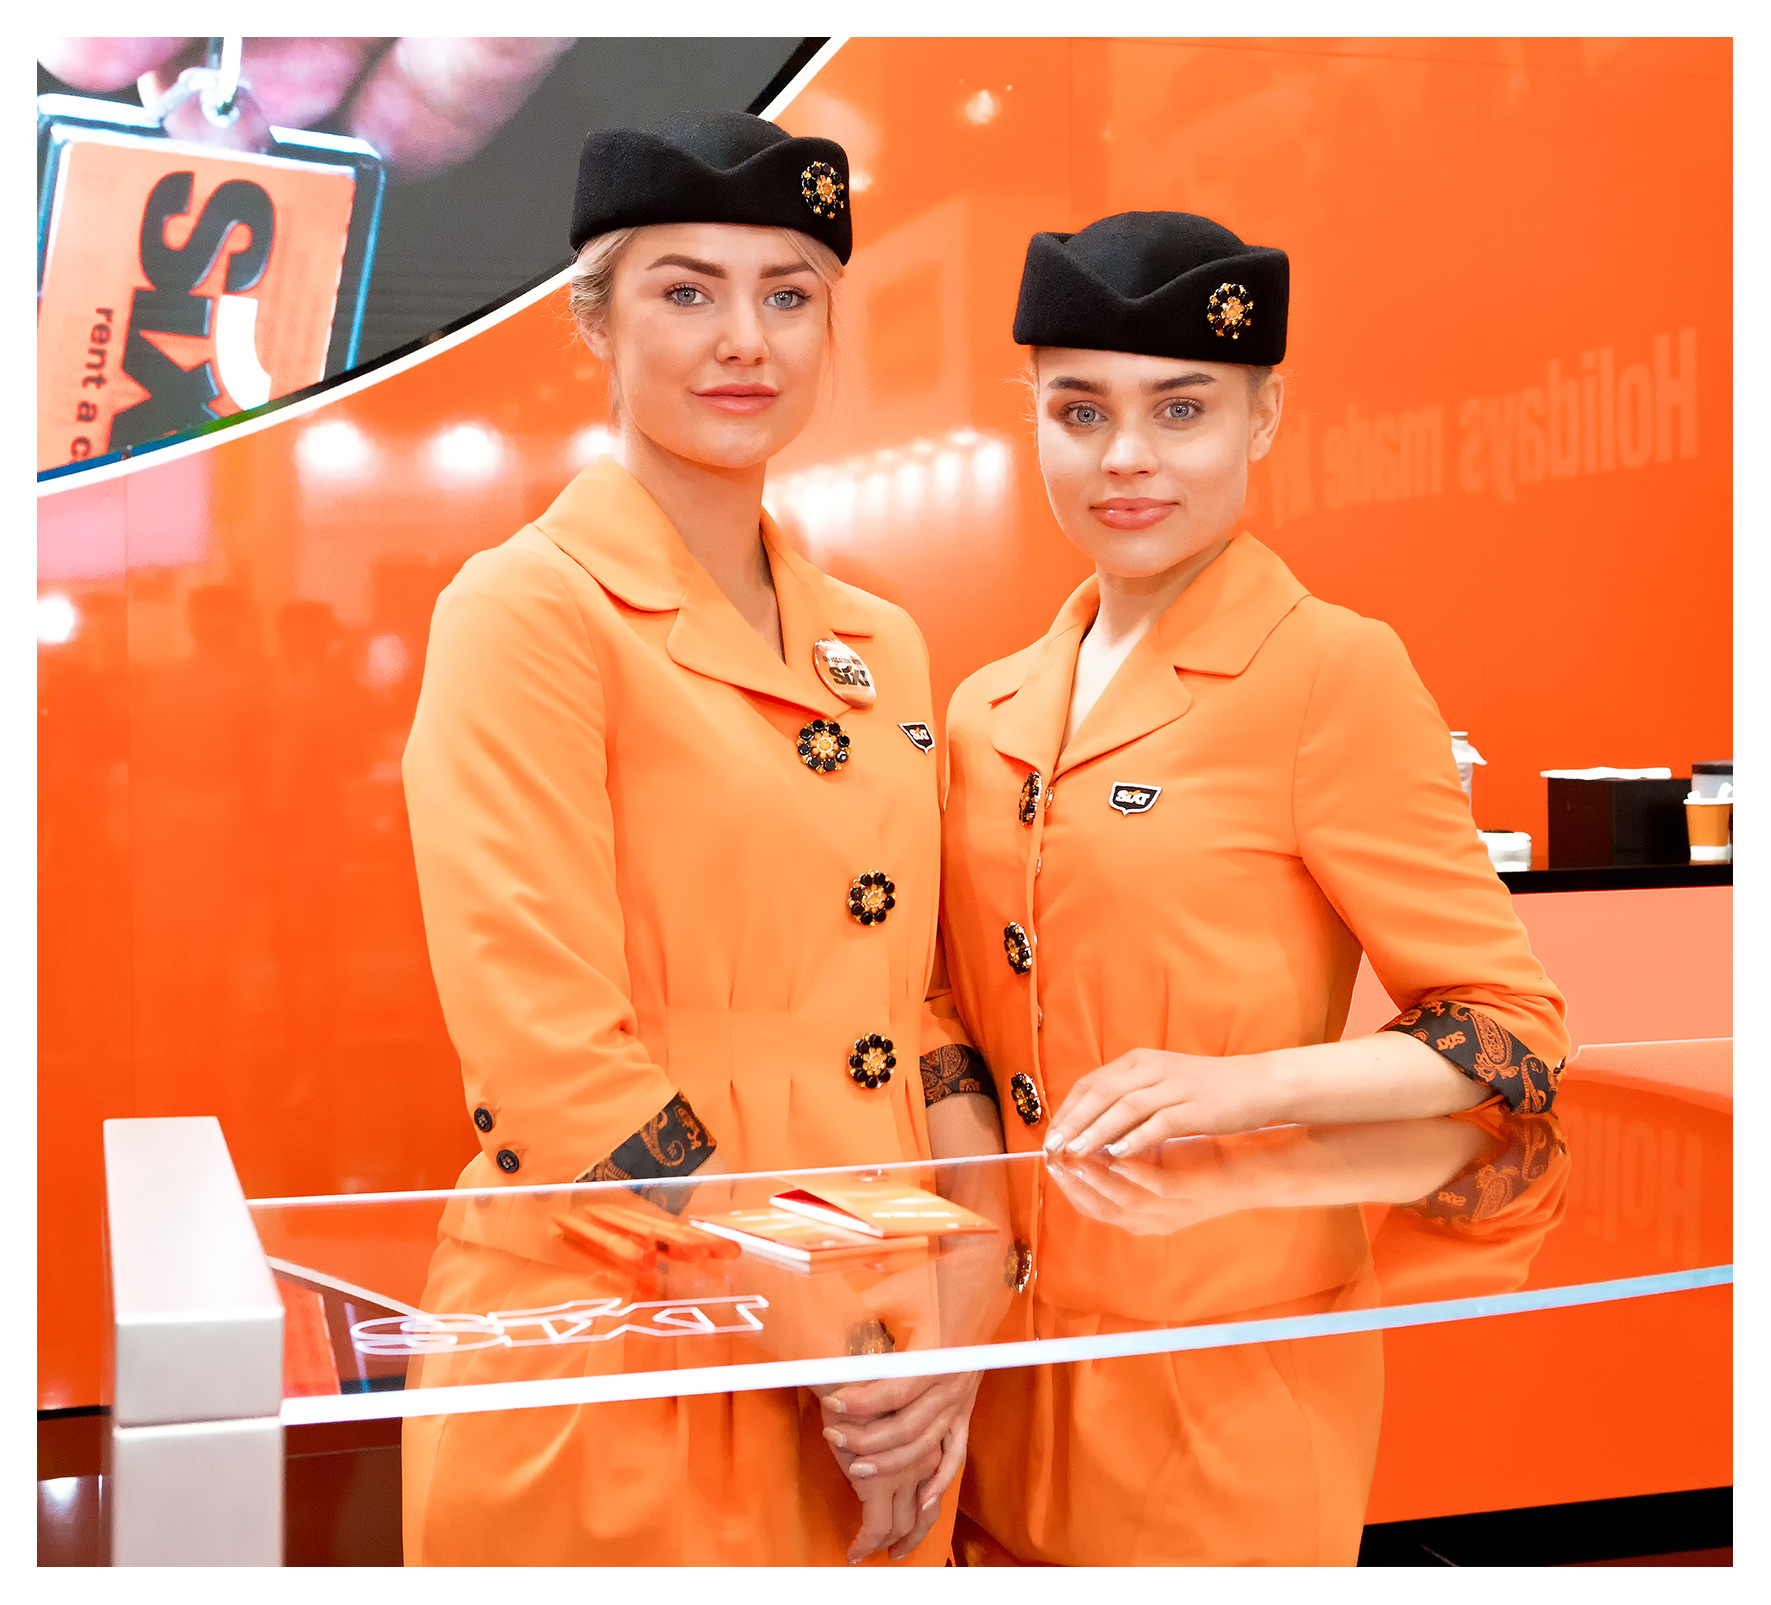 Editorial photography, portrait of Sixt Car Hire hostesses, World Travel Market 2018, ExCel London